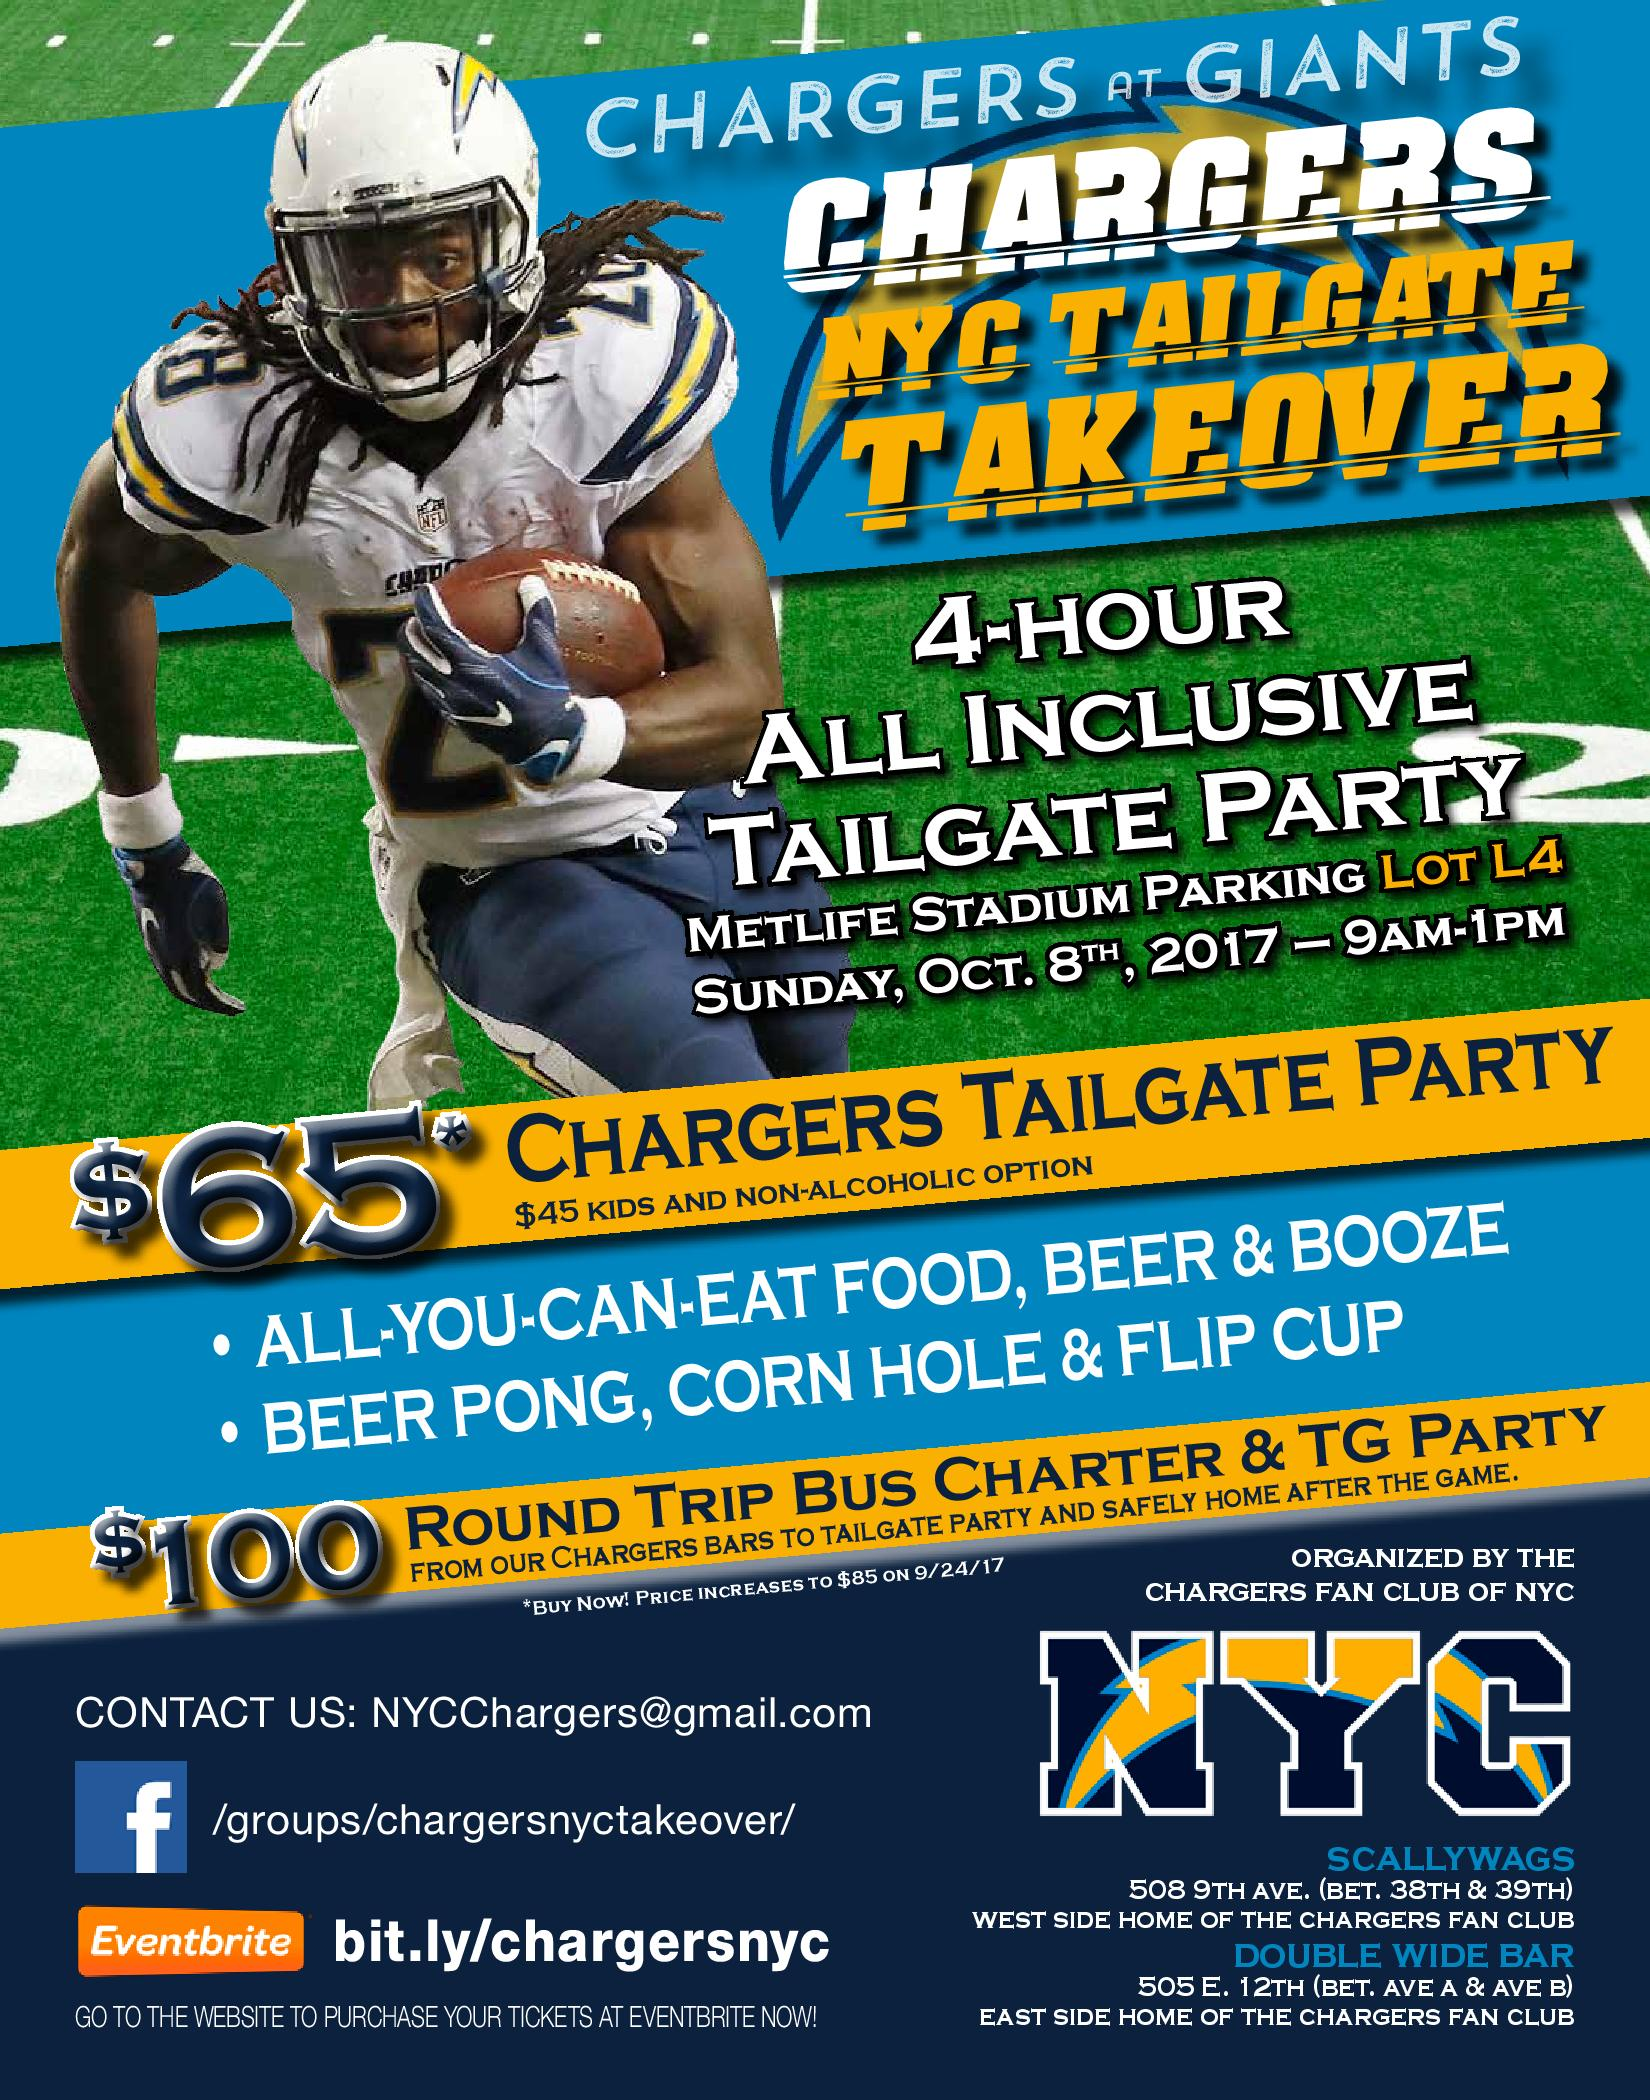 Chargers NYC Takeover